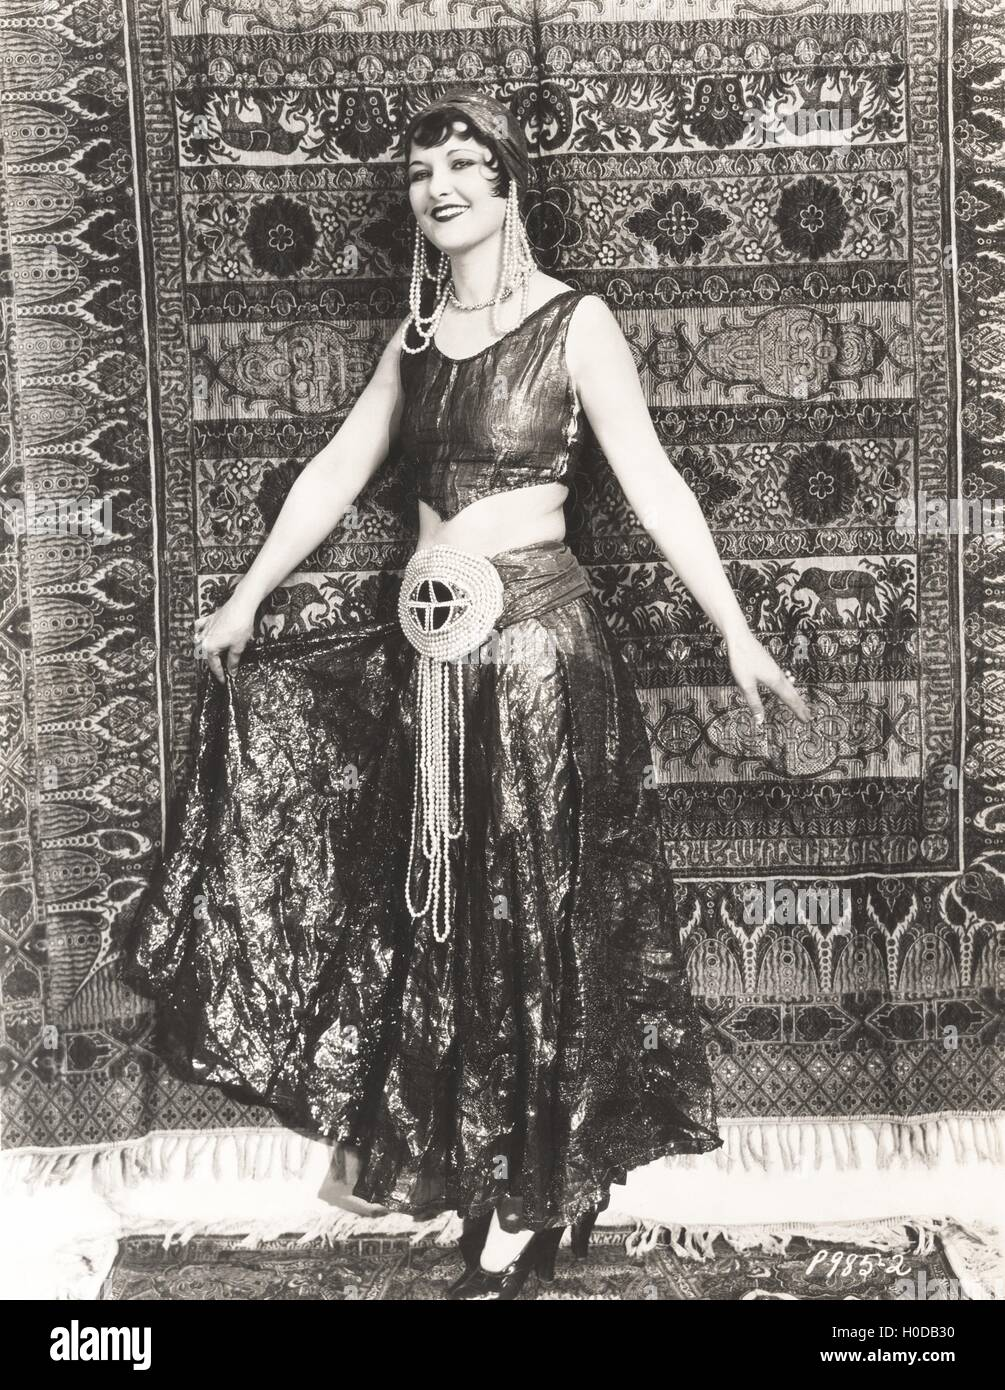 Woman dressed in gypsy costume standing in front of rug - Stock Image